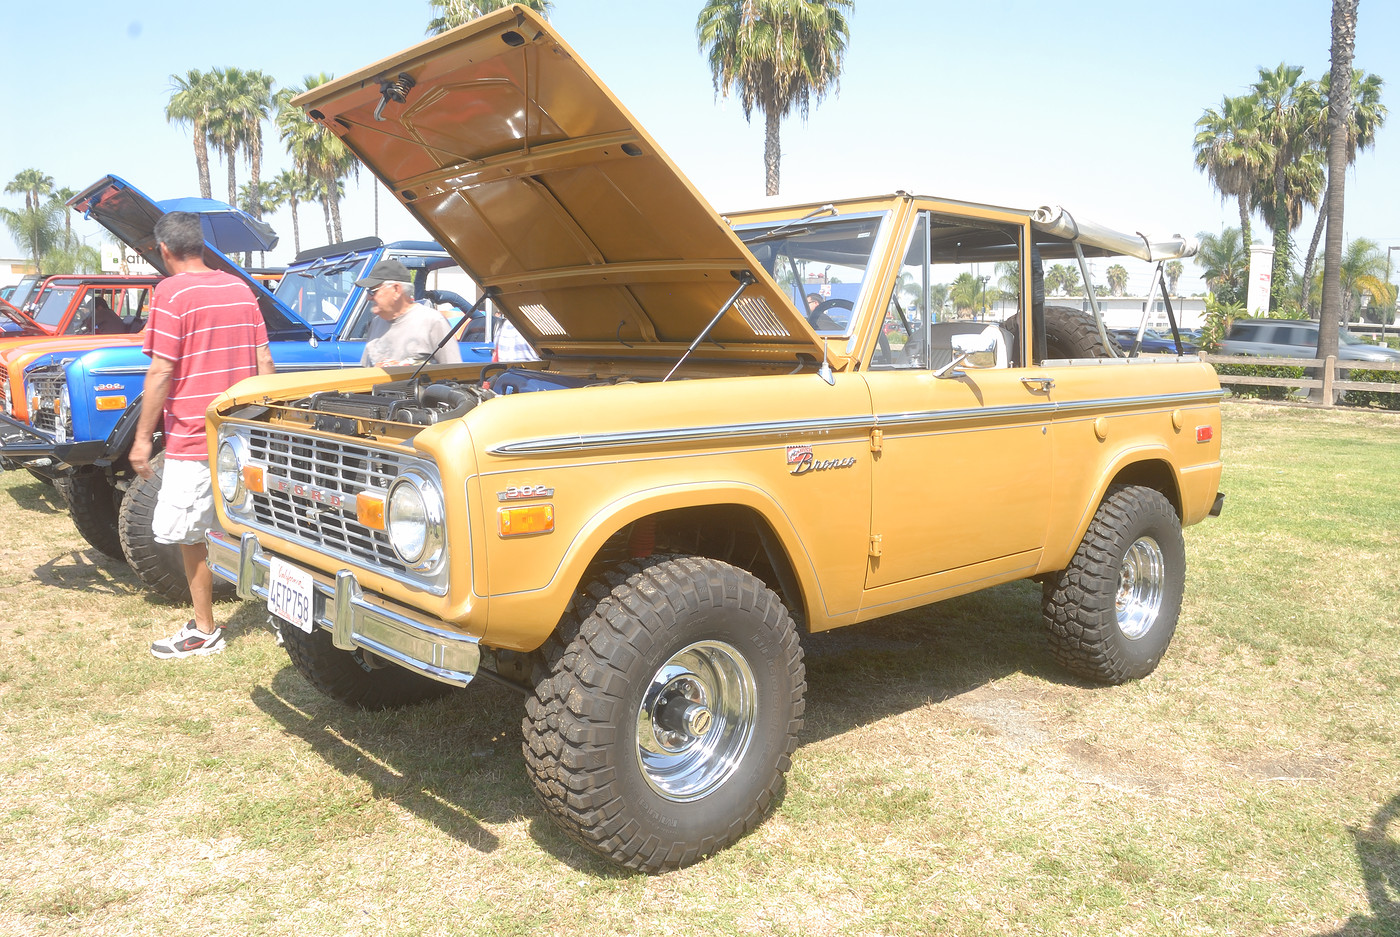 19XX Ford Bronco owned by Andrew L  Bergloff DSC 4877